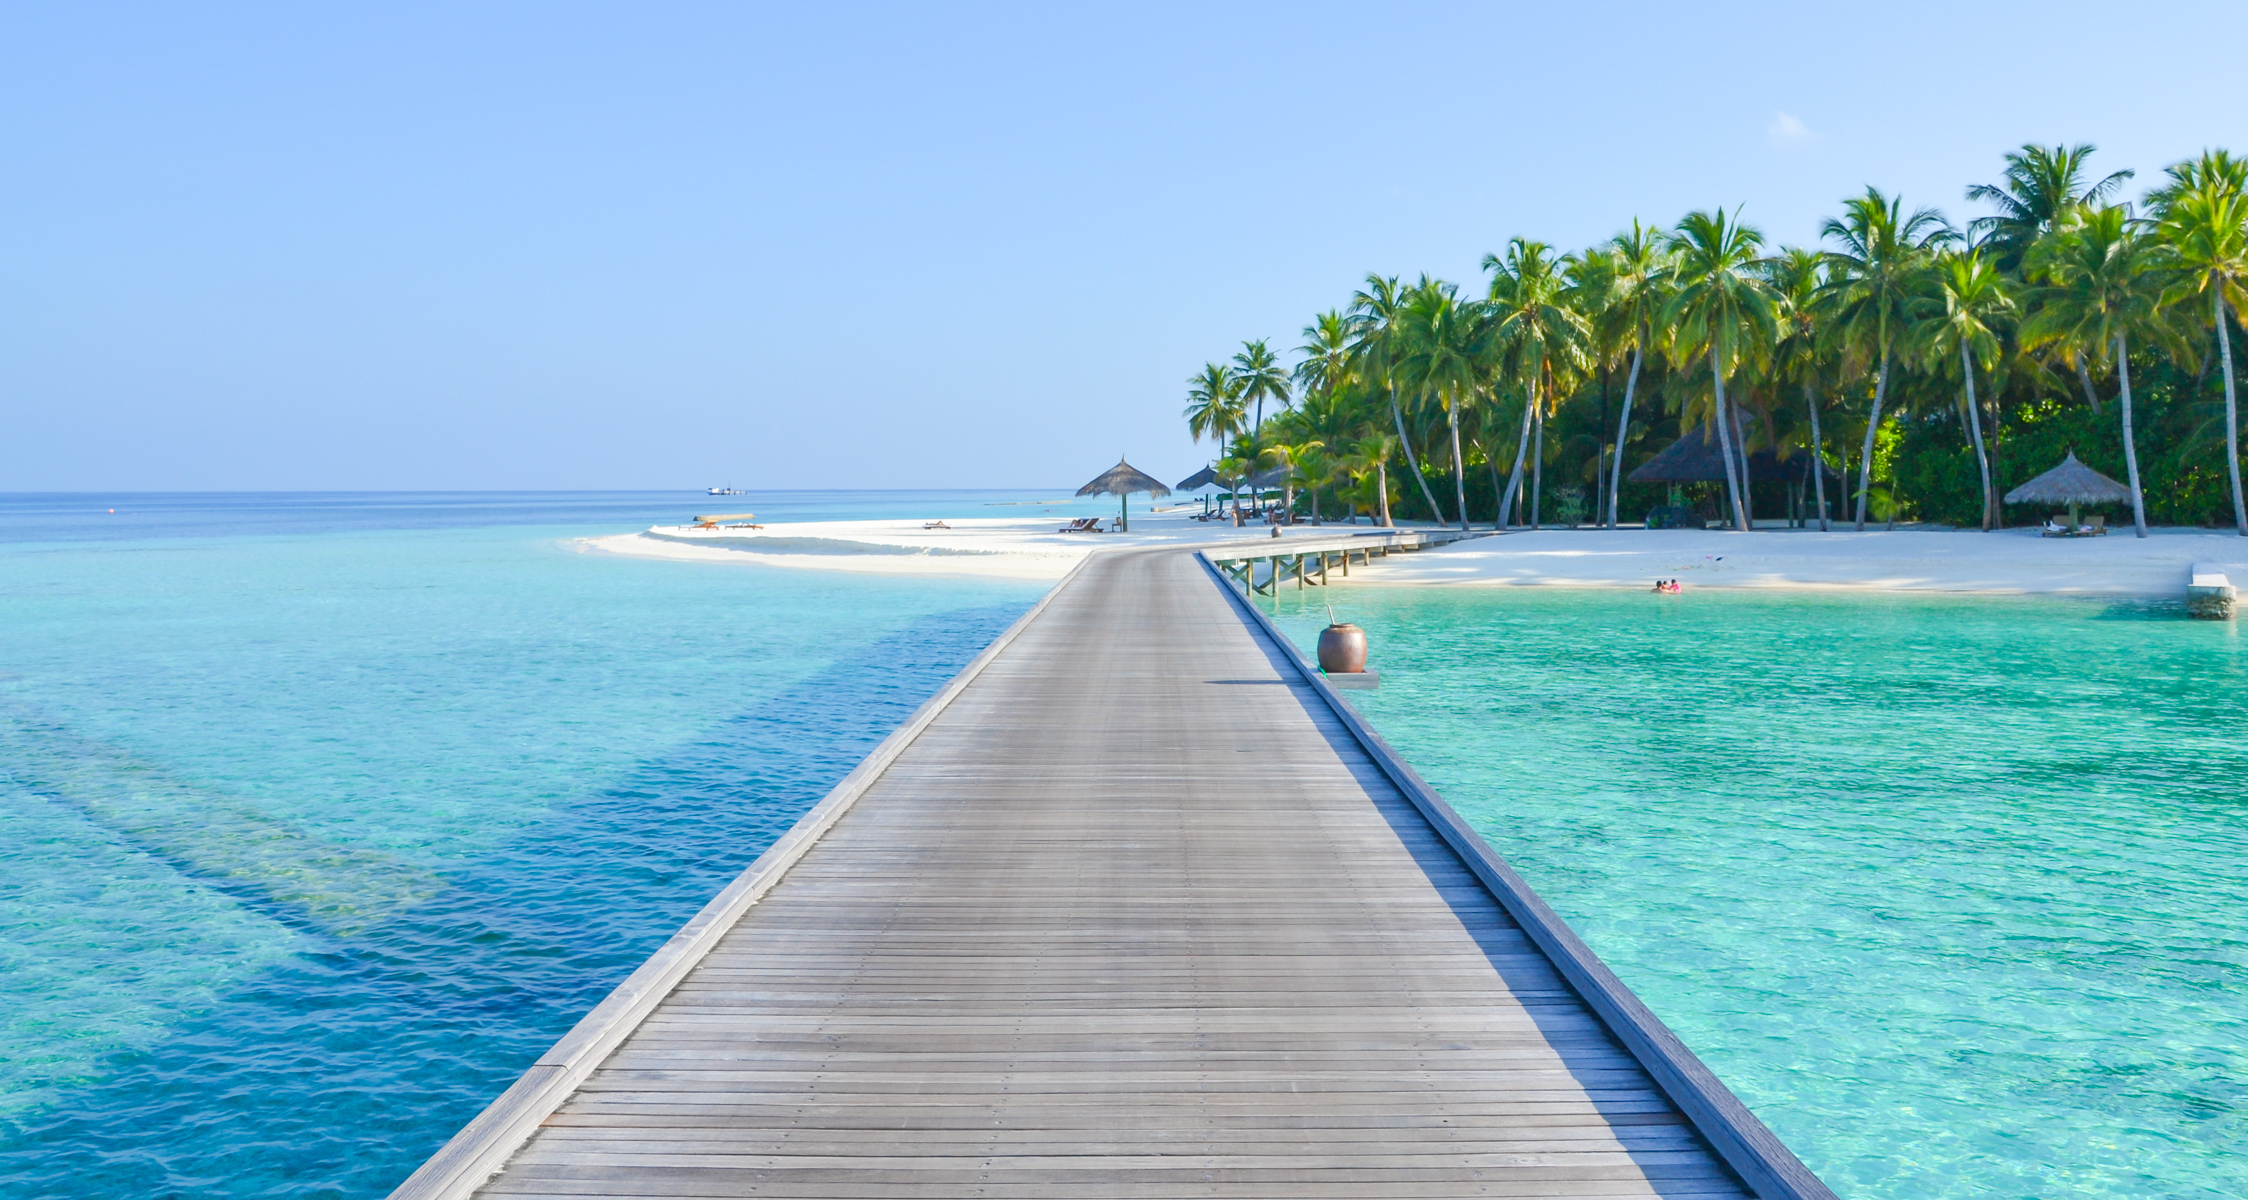 Our trip to Maldives: diving into paradise